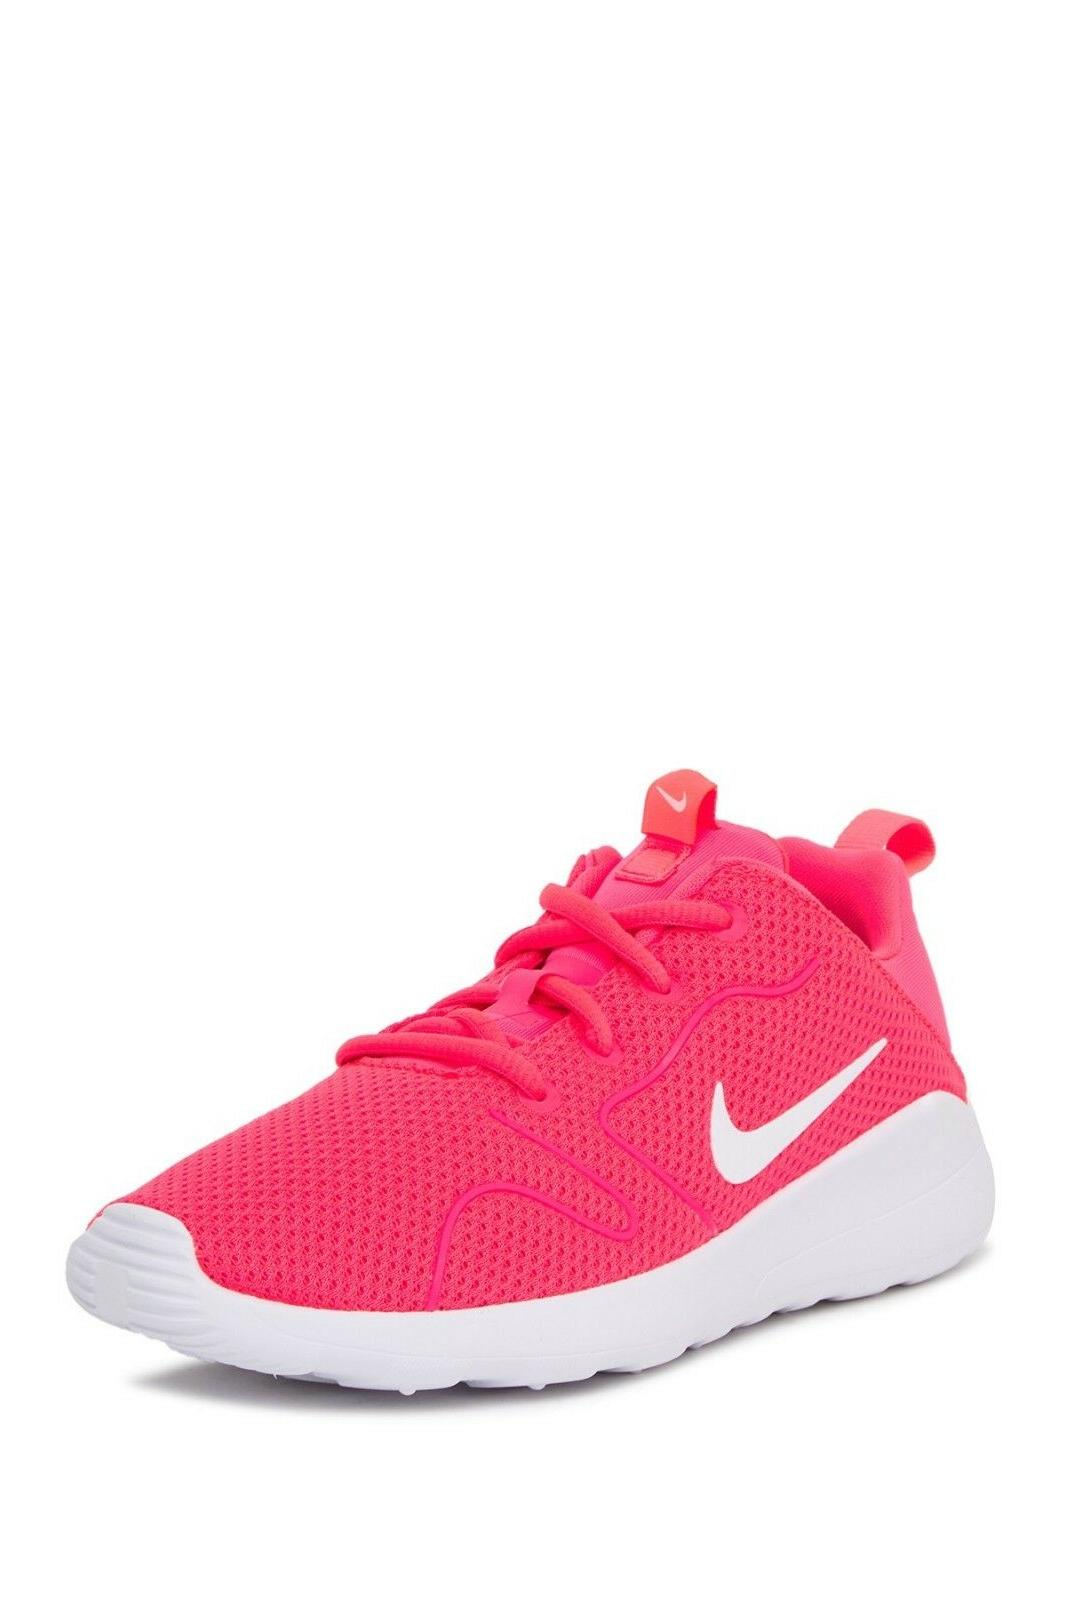 NEW Girls Nike Kaishi Sneakers Shoes Pink 844671 600 Little